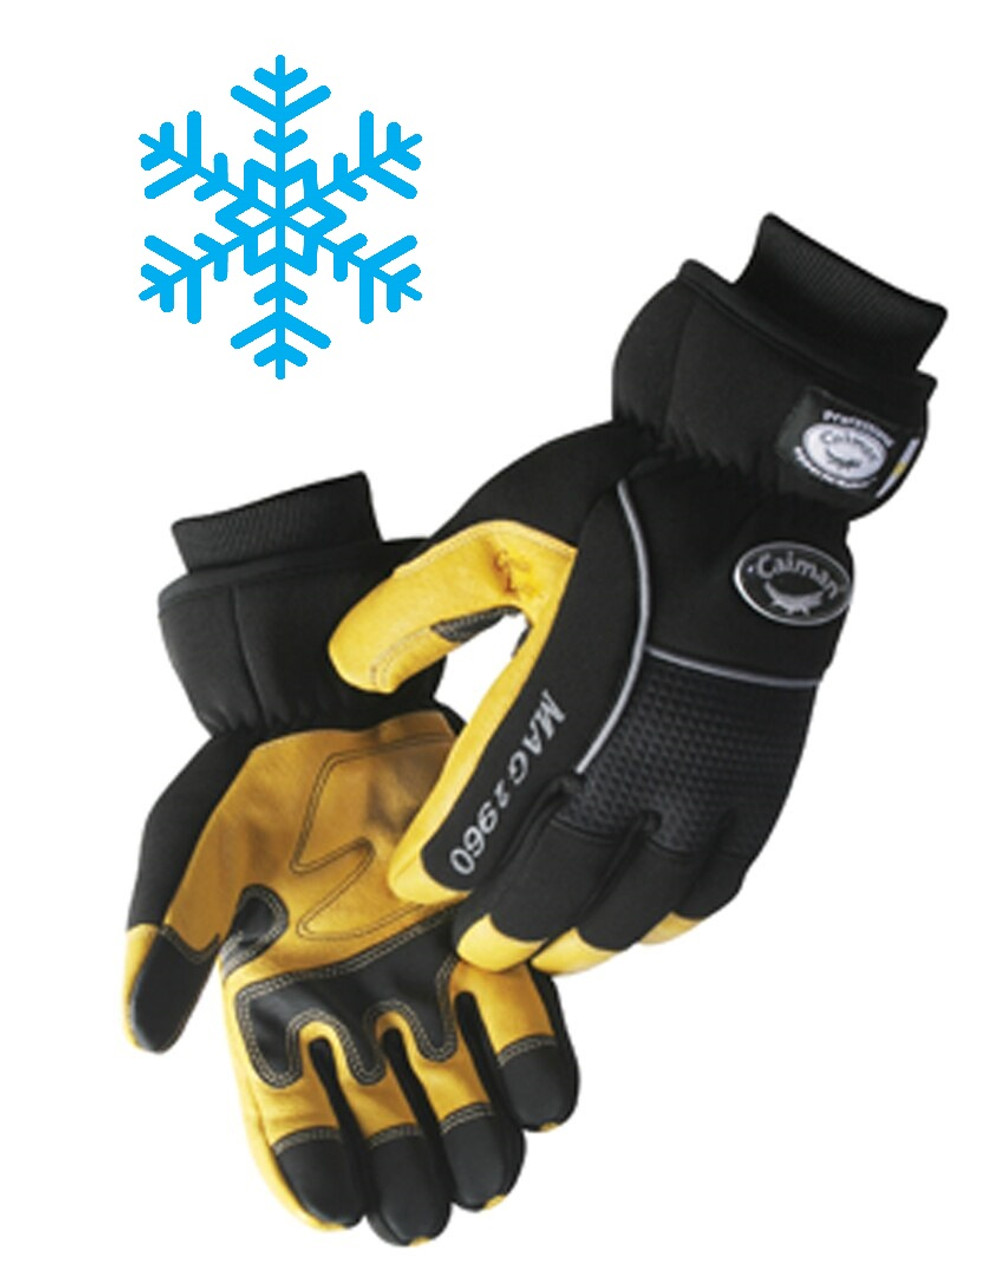 Caiman® Insulated Pigskin Leather Palm Gloves - Insulted Gloves   ## 2960 ##